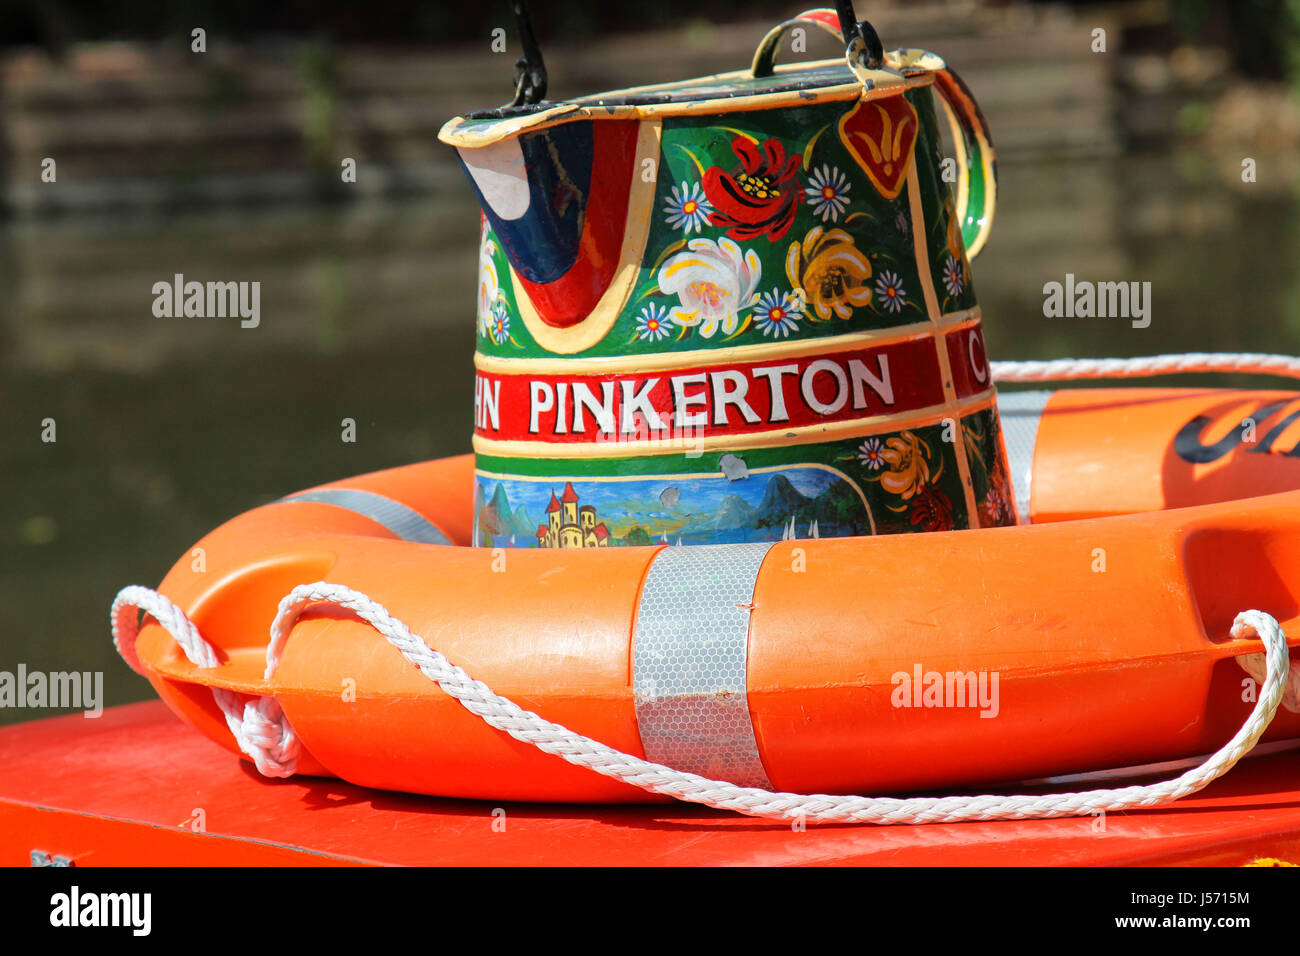 Decorated jug on canal boat, Basingstoke Canal, Odiham, Hampshire UK - Stock Image